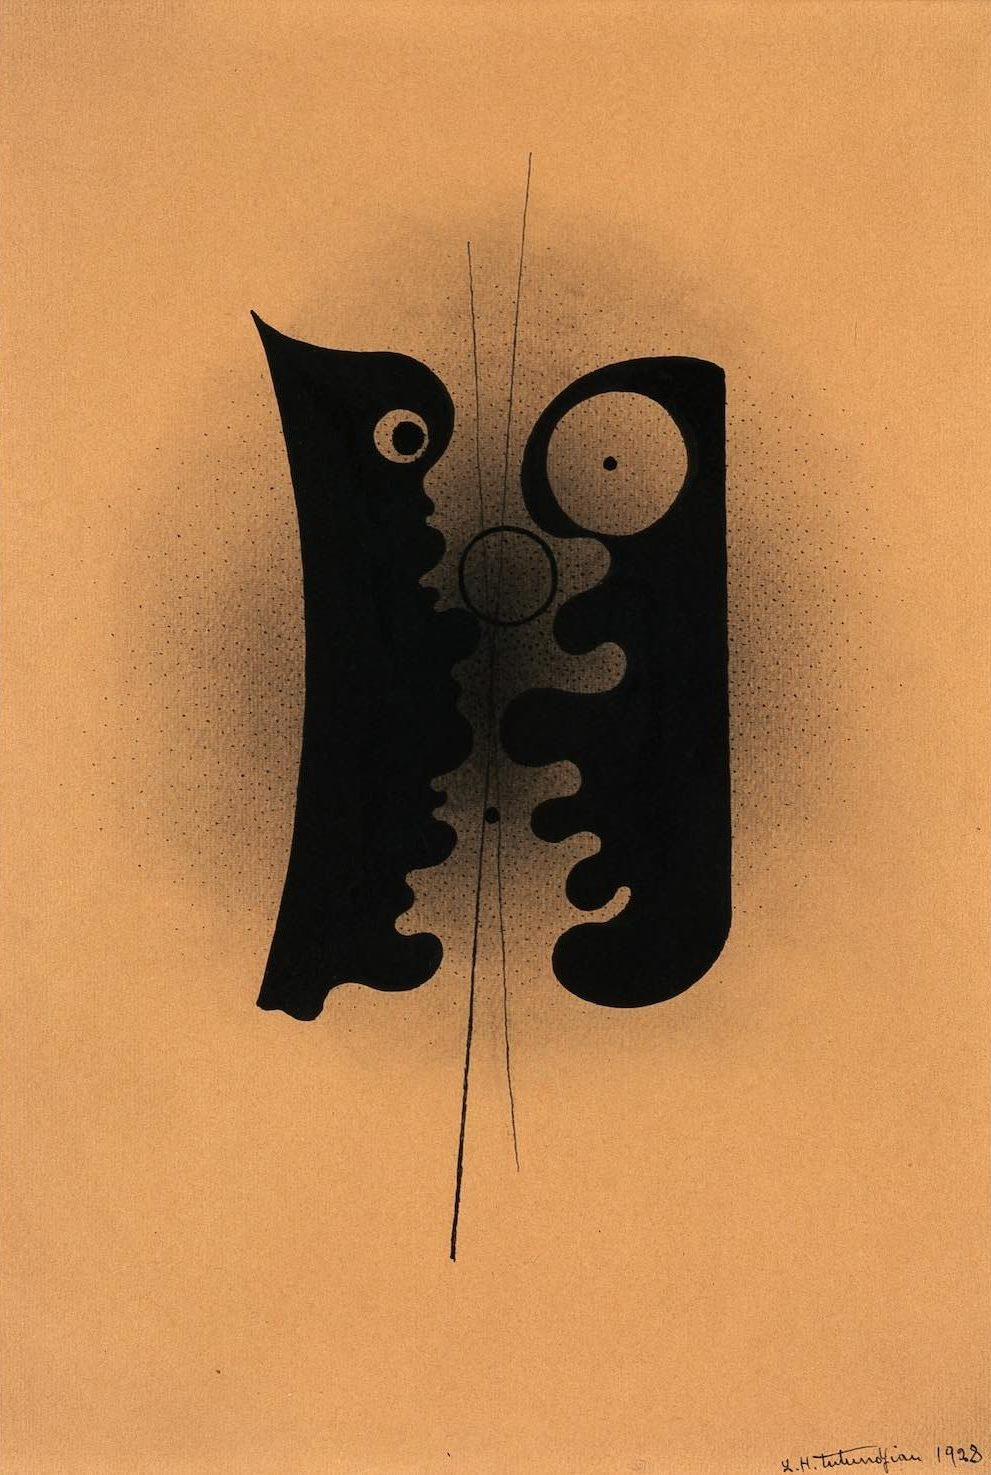 Untitled, 1928, ink on paper, 30 x 21,5 cm